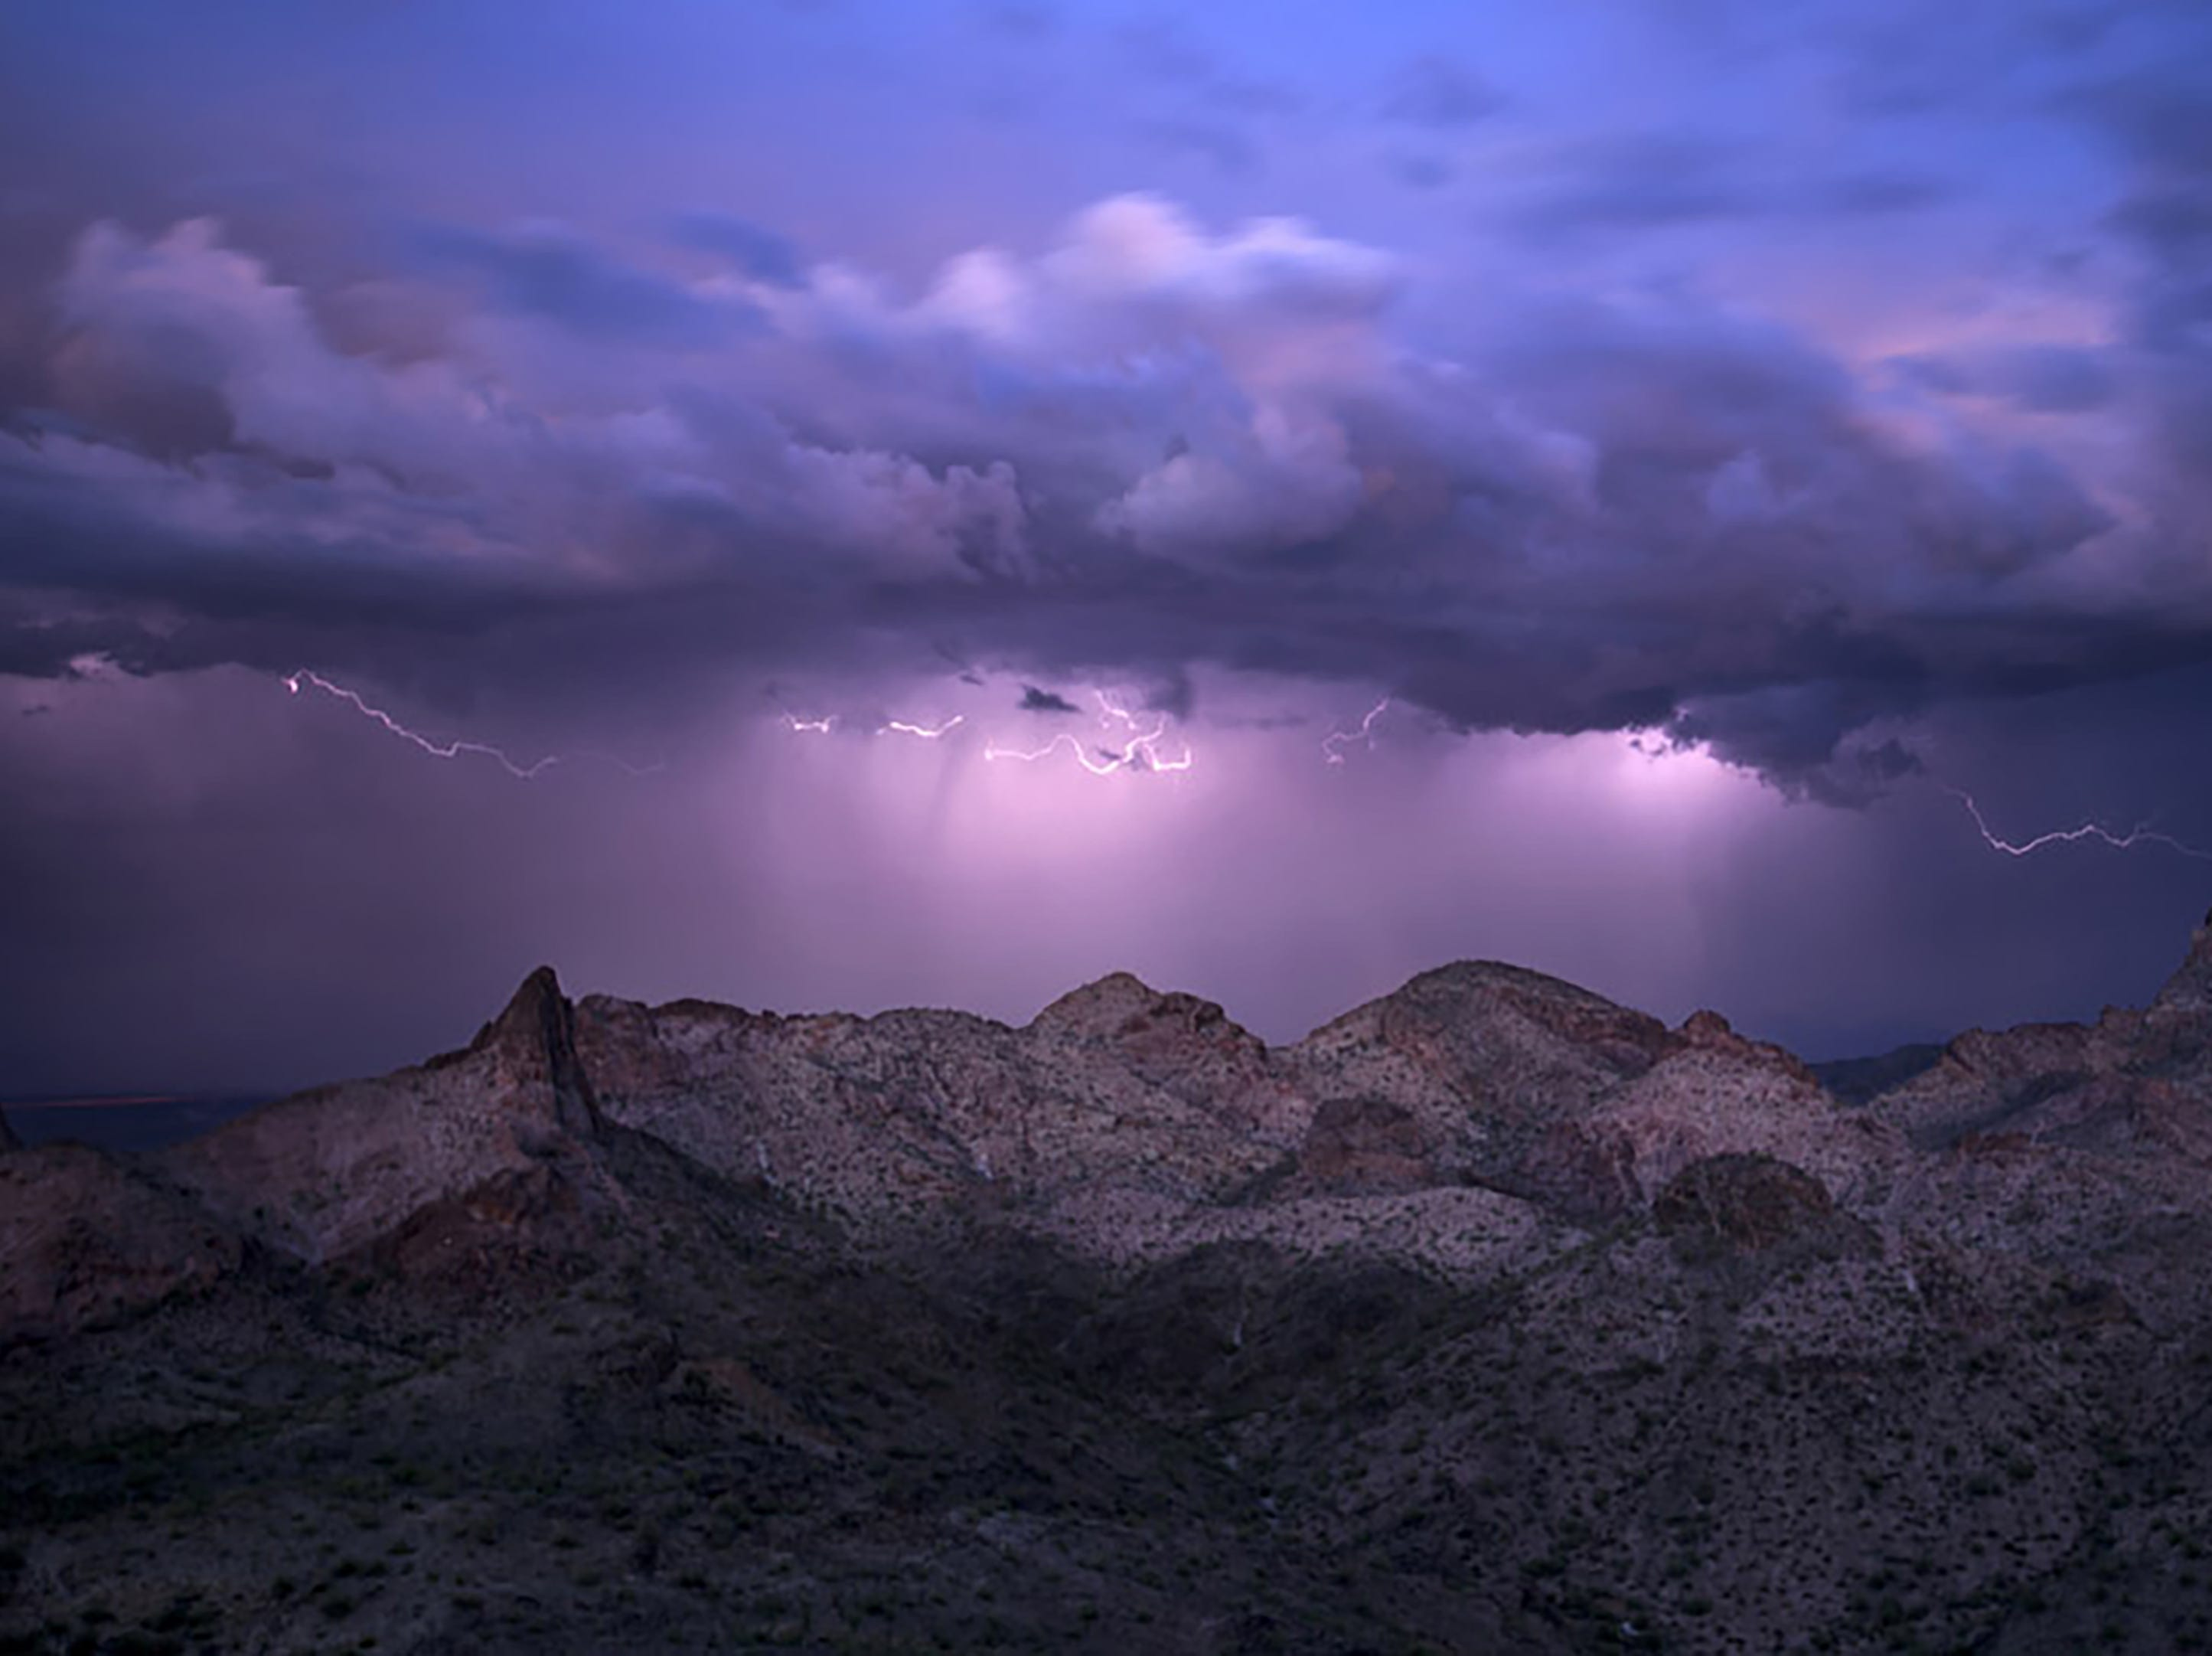 Lightning is seen over the Eagletail Mountains outside of Tonopah.